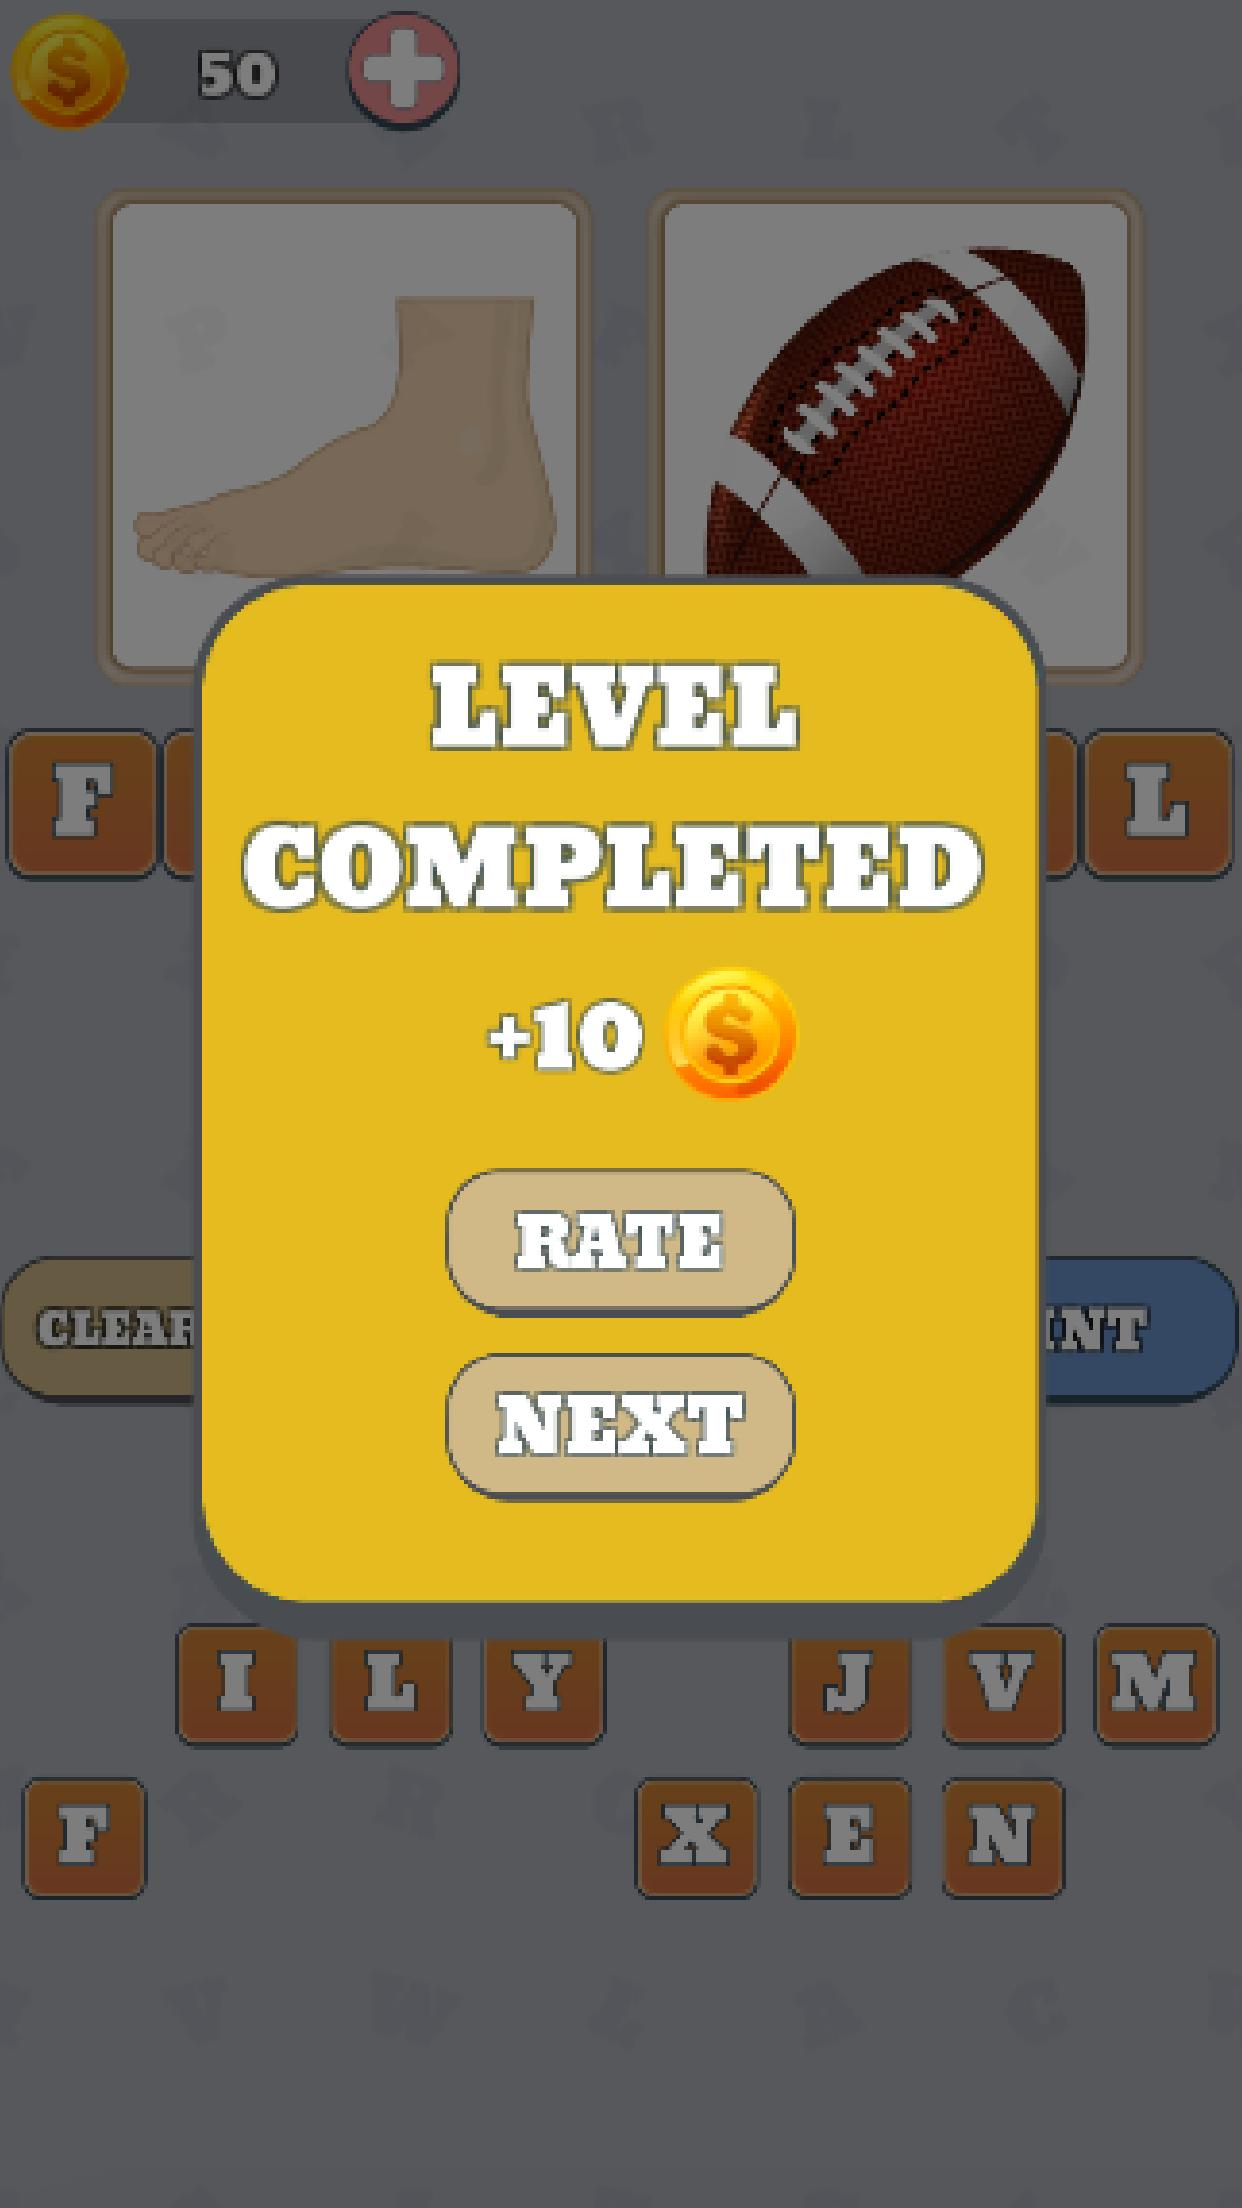 Pictures to word - picture quiz screenshot 4